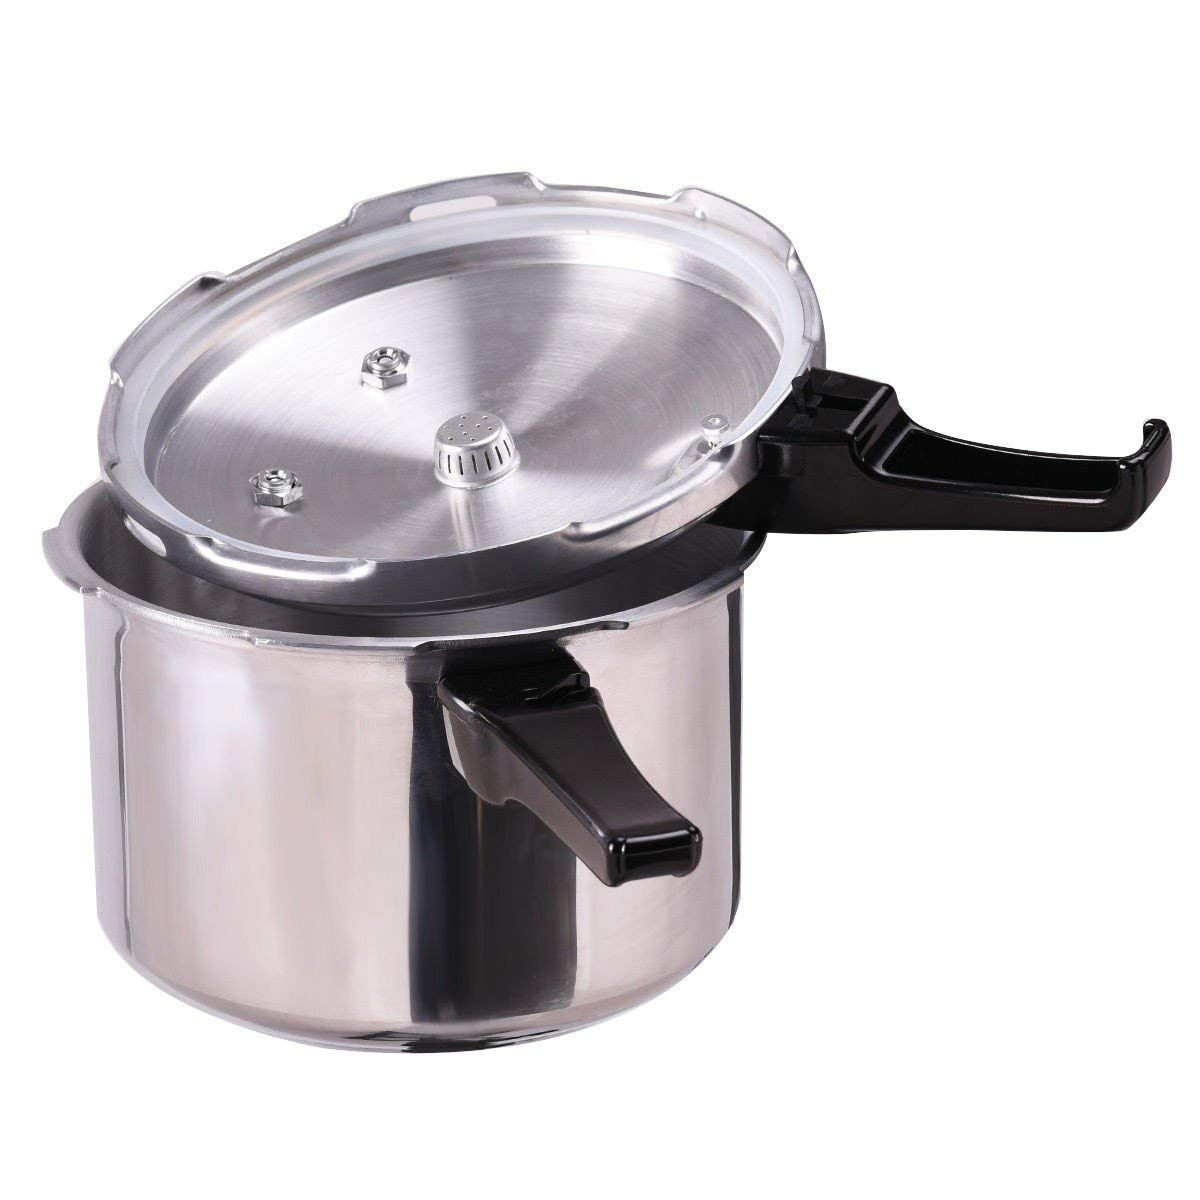 MyEasyShopping Durable Multi-function Block-Proof 6-Quart Aluminum Kitchen Pressure Cooker Canner